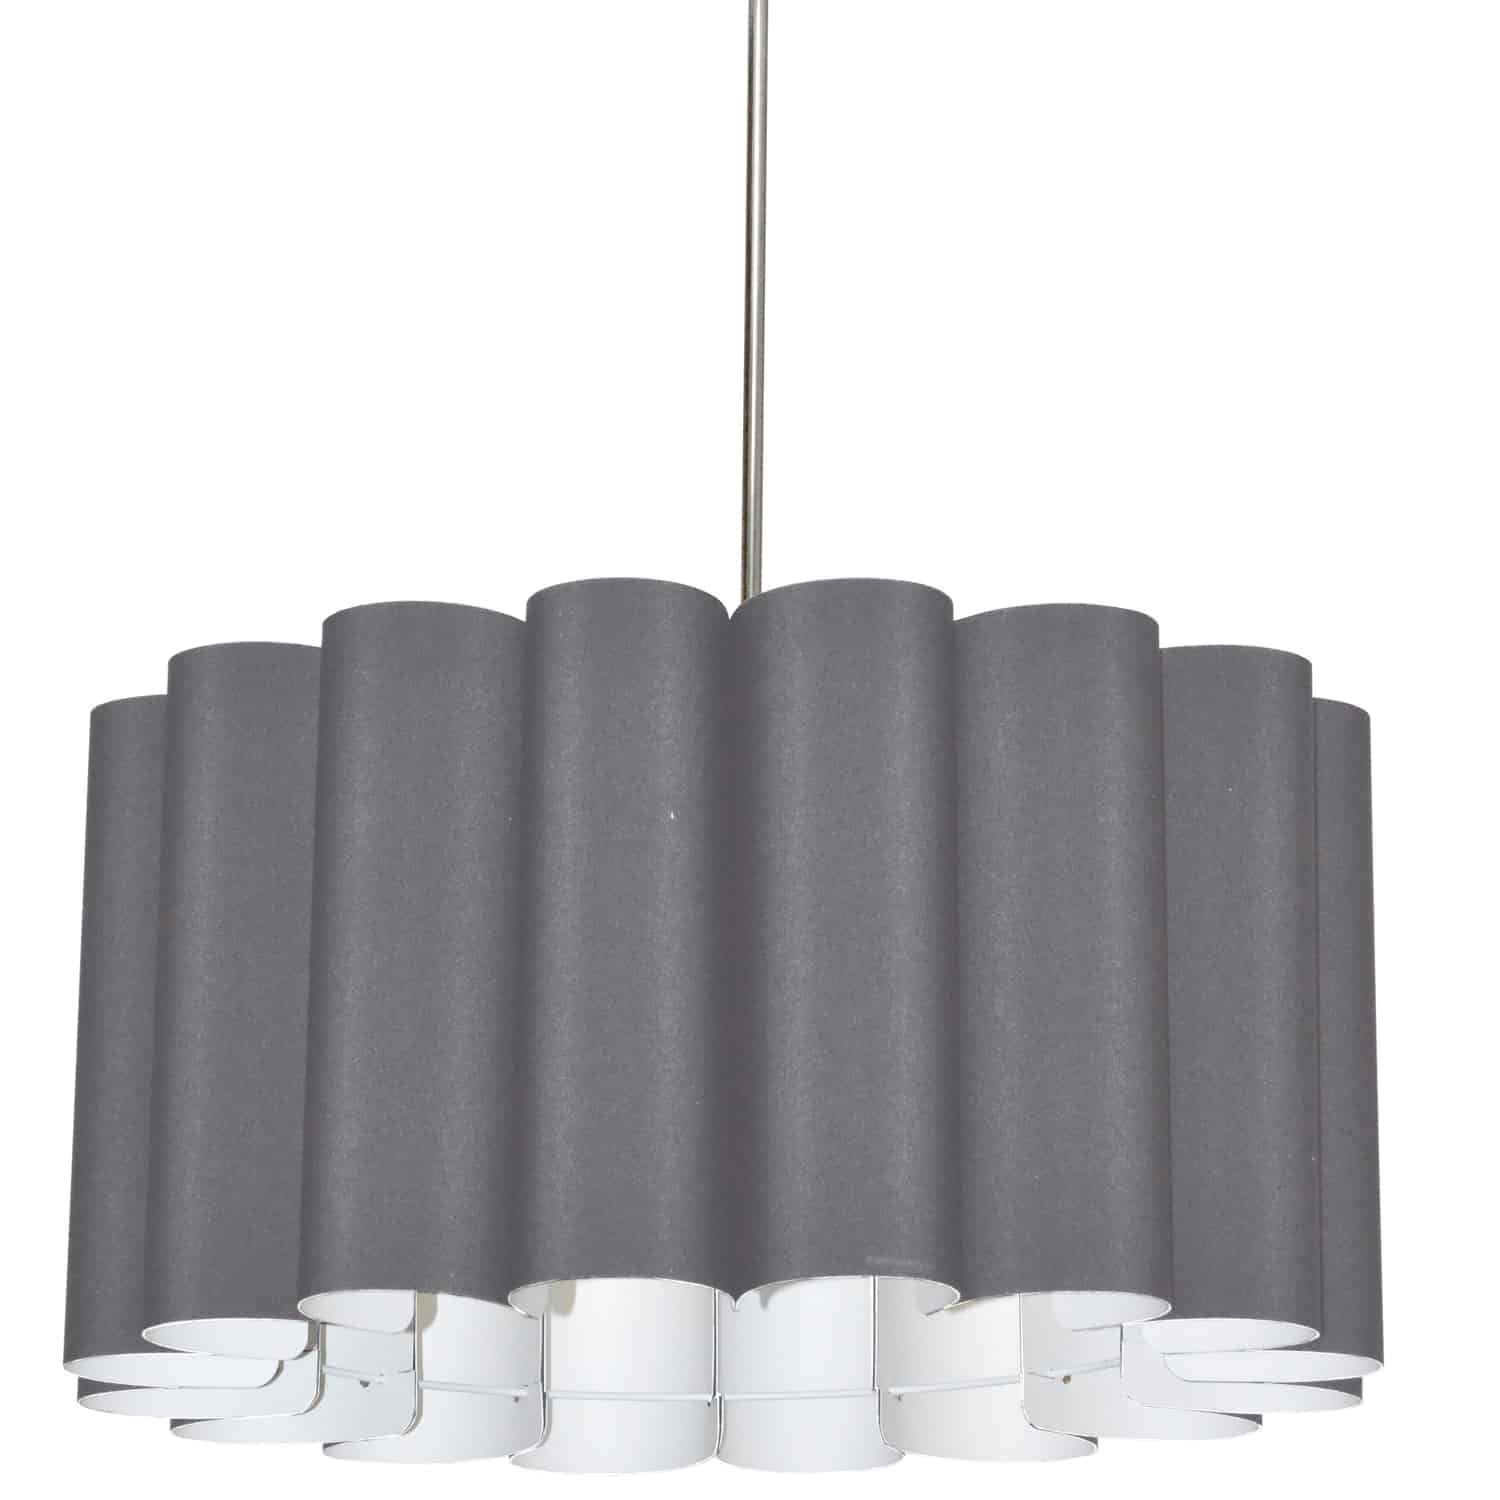 4 Light Sandra Pendant SGlow Grey Polished Chrome